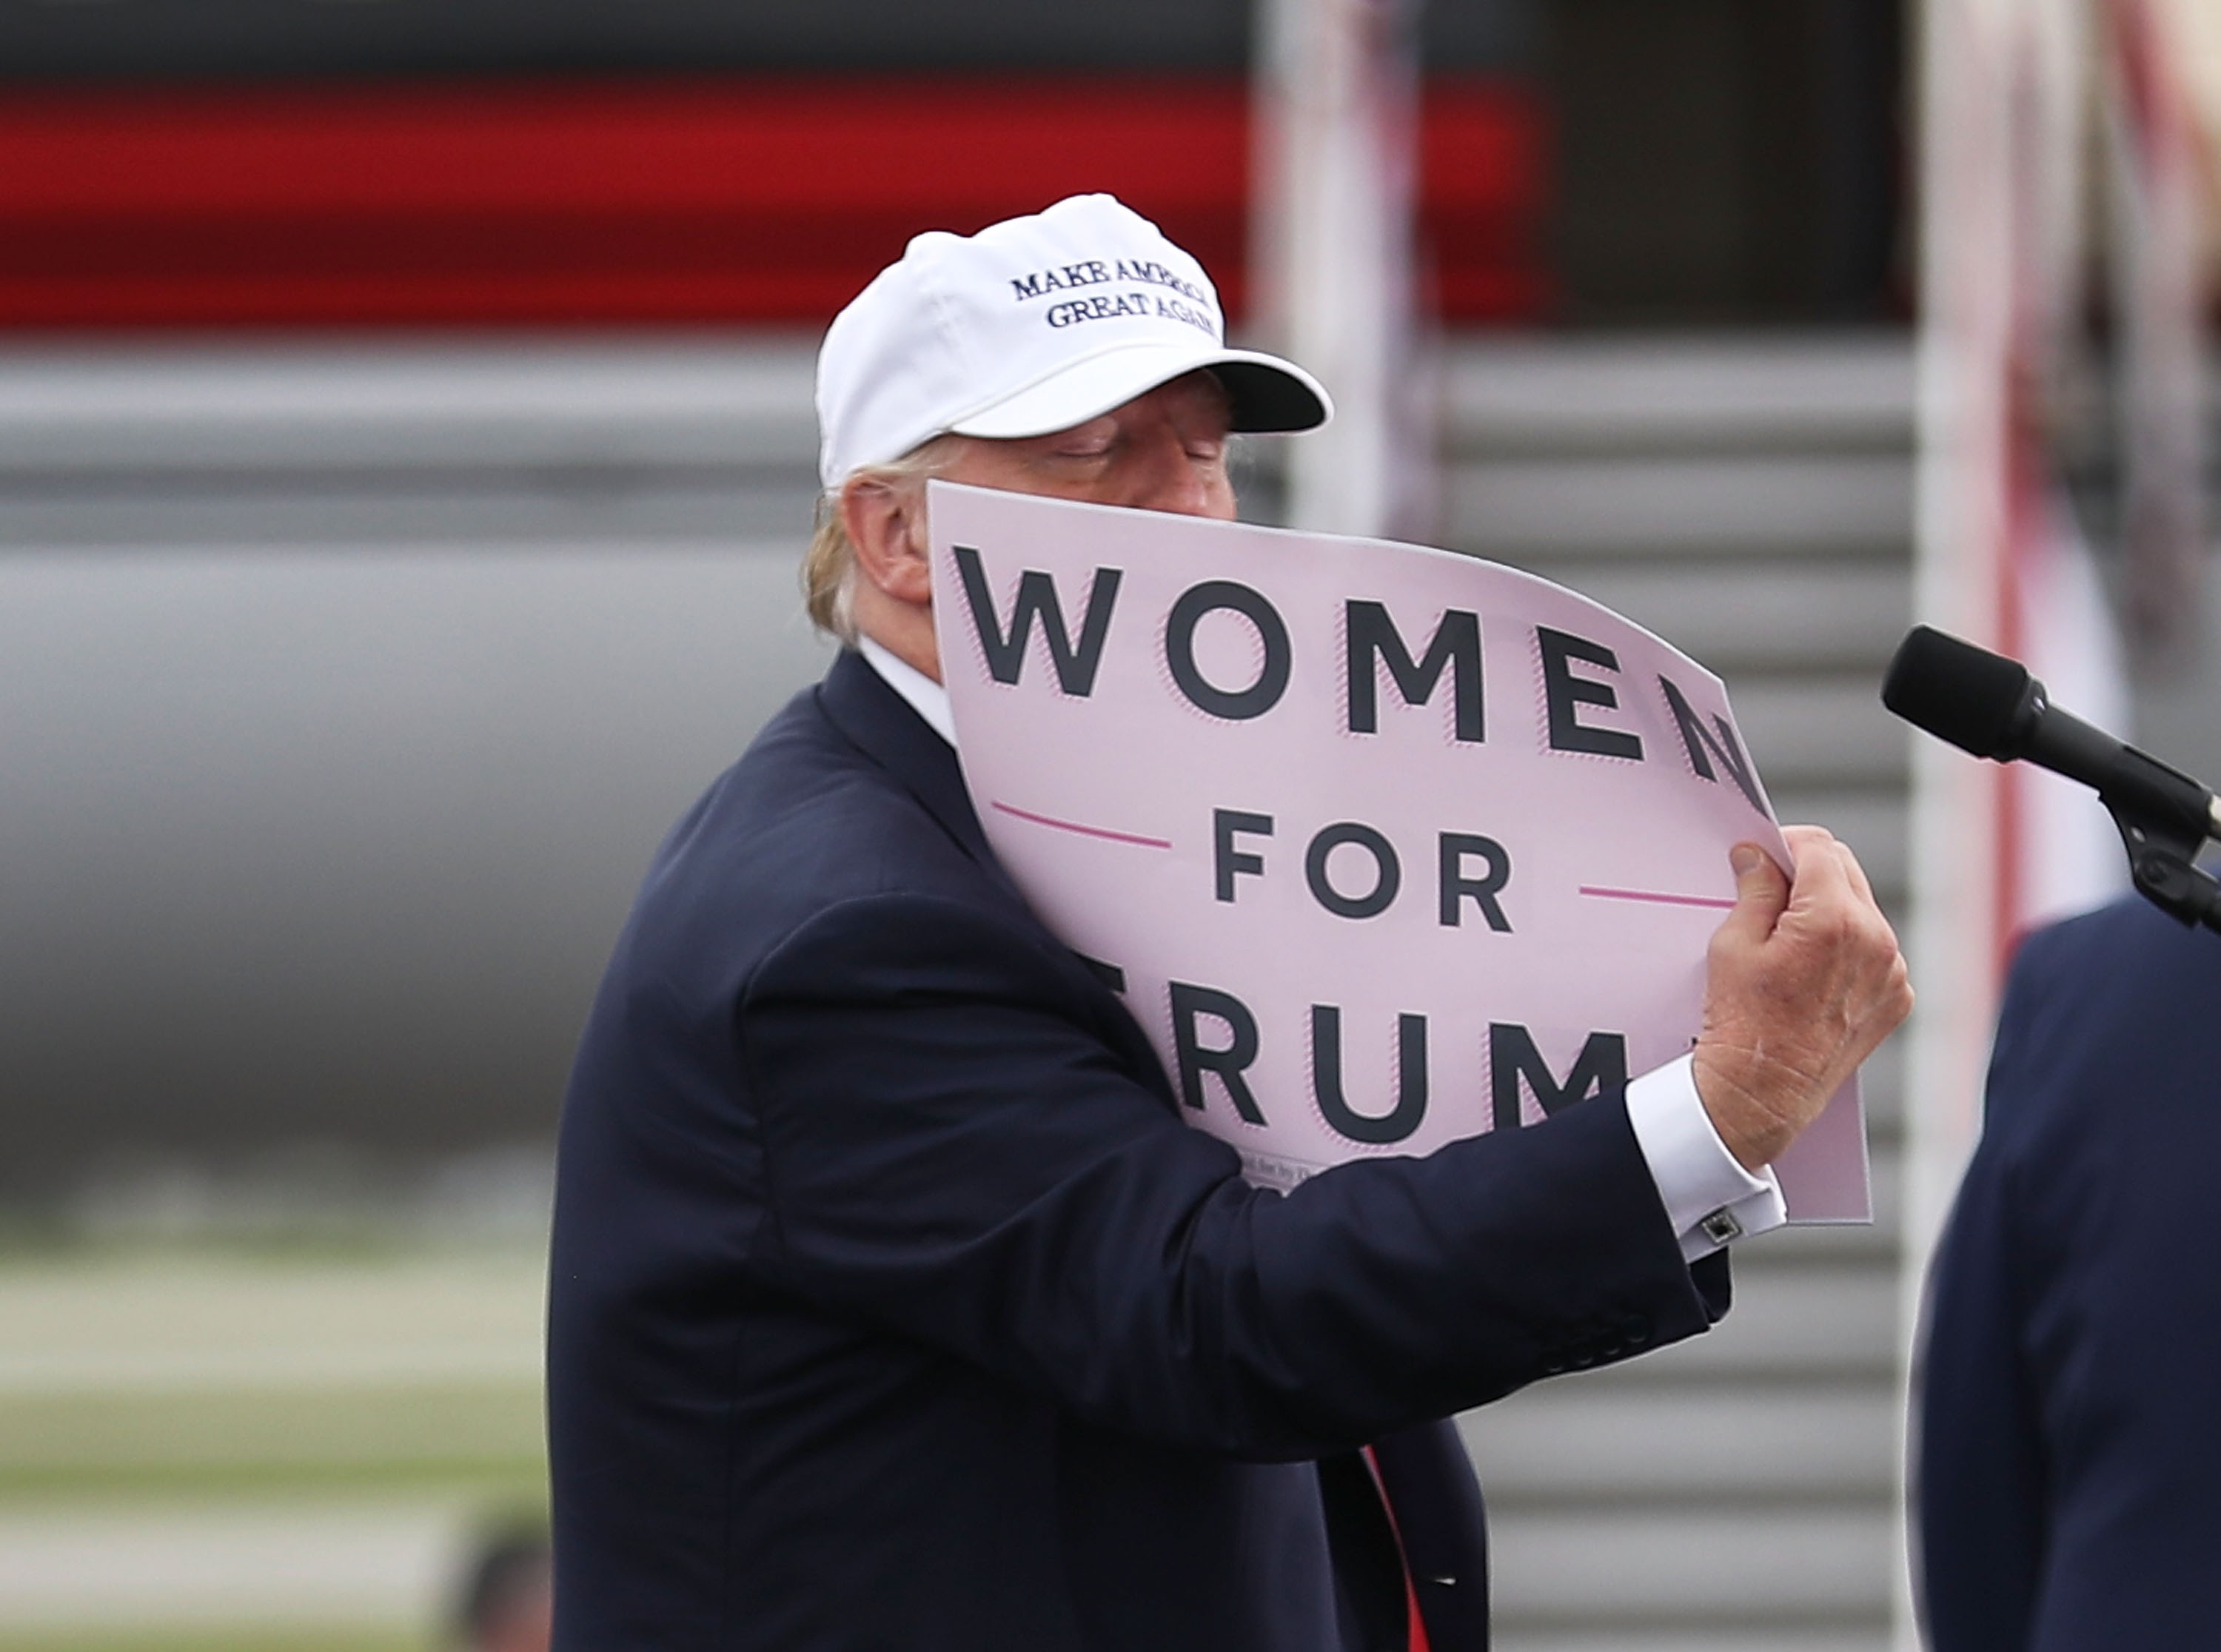 Donald Trump Sexual Assault Allegations: Billionaire Accused Of ...: http://www.ibtimes.com/donald-trump-sexual-assault-allegations-billionaire-accused-groping-kissing-women-2430985